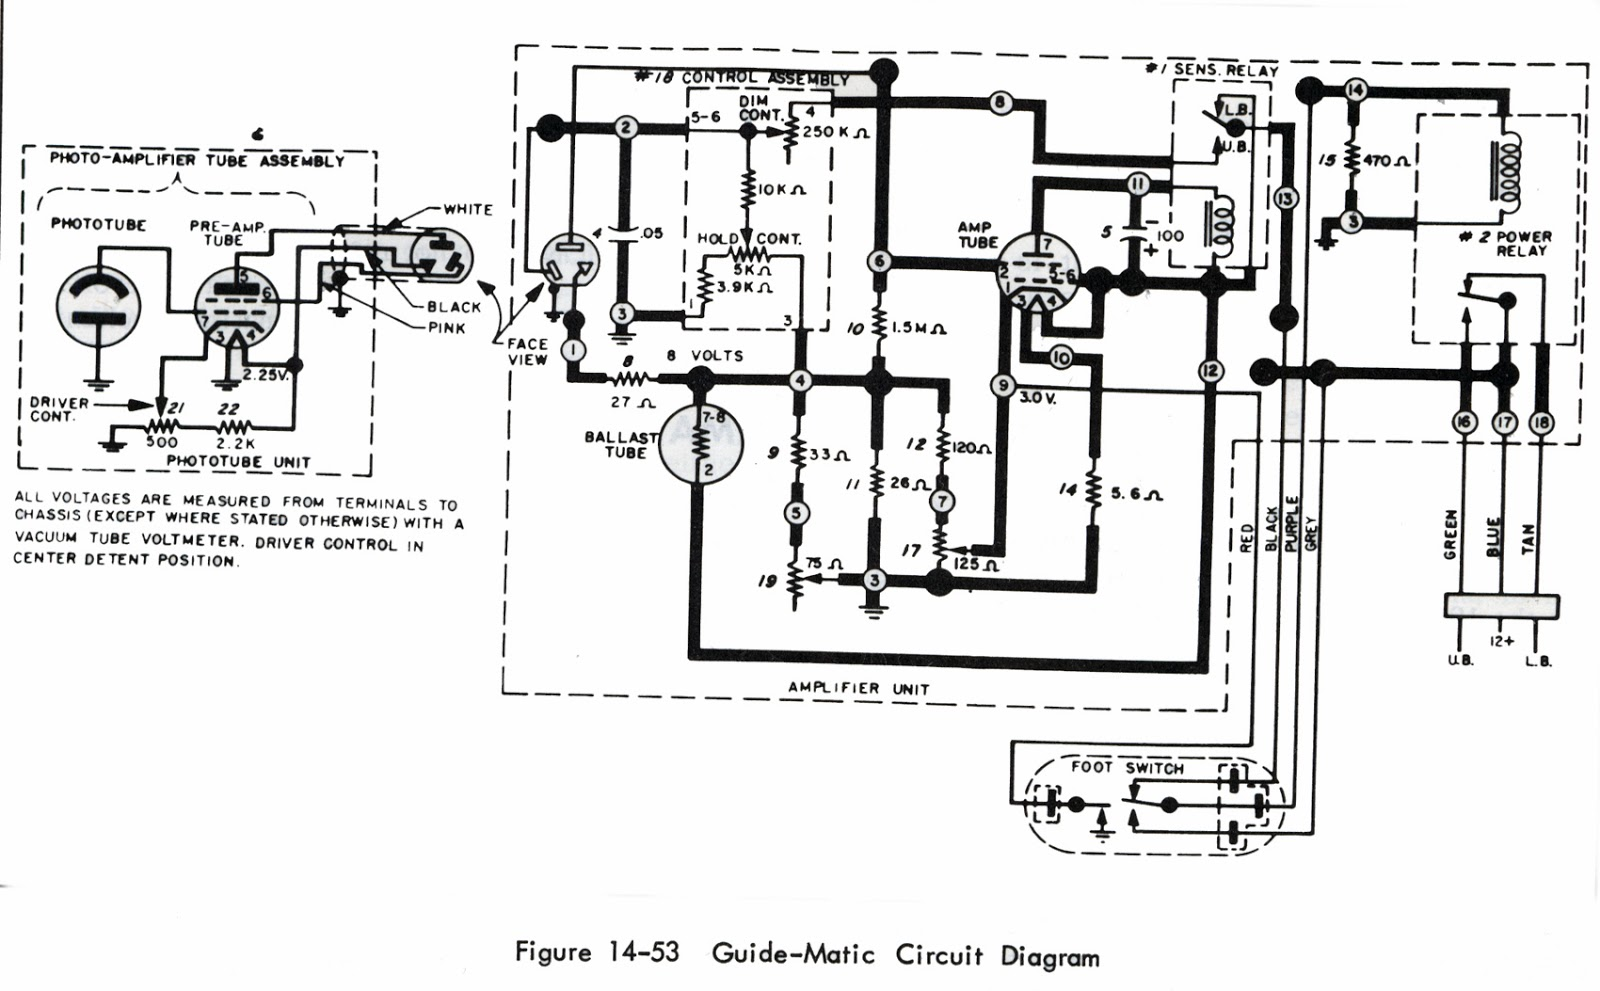 1969 Pontiac 350 Engine Diagram Wiring Schematic Diagrams Mercury 1954 Ford